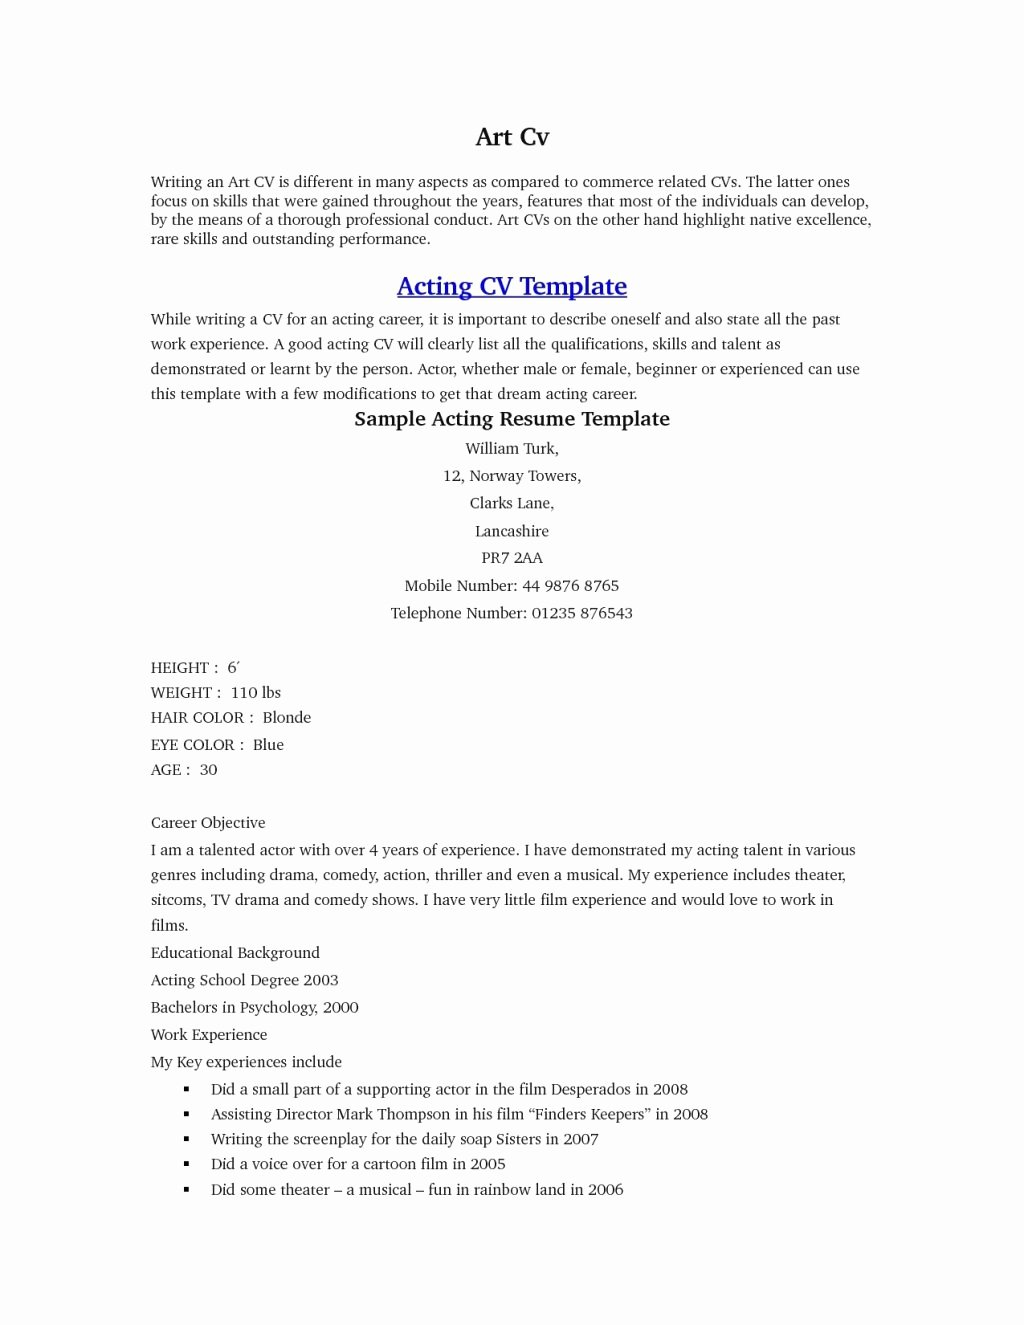 Child Actor Resume Template Elegant Child Actor Resume Example Template Tag 50 Beginner Child